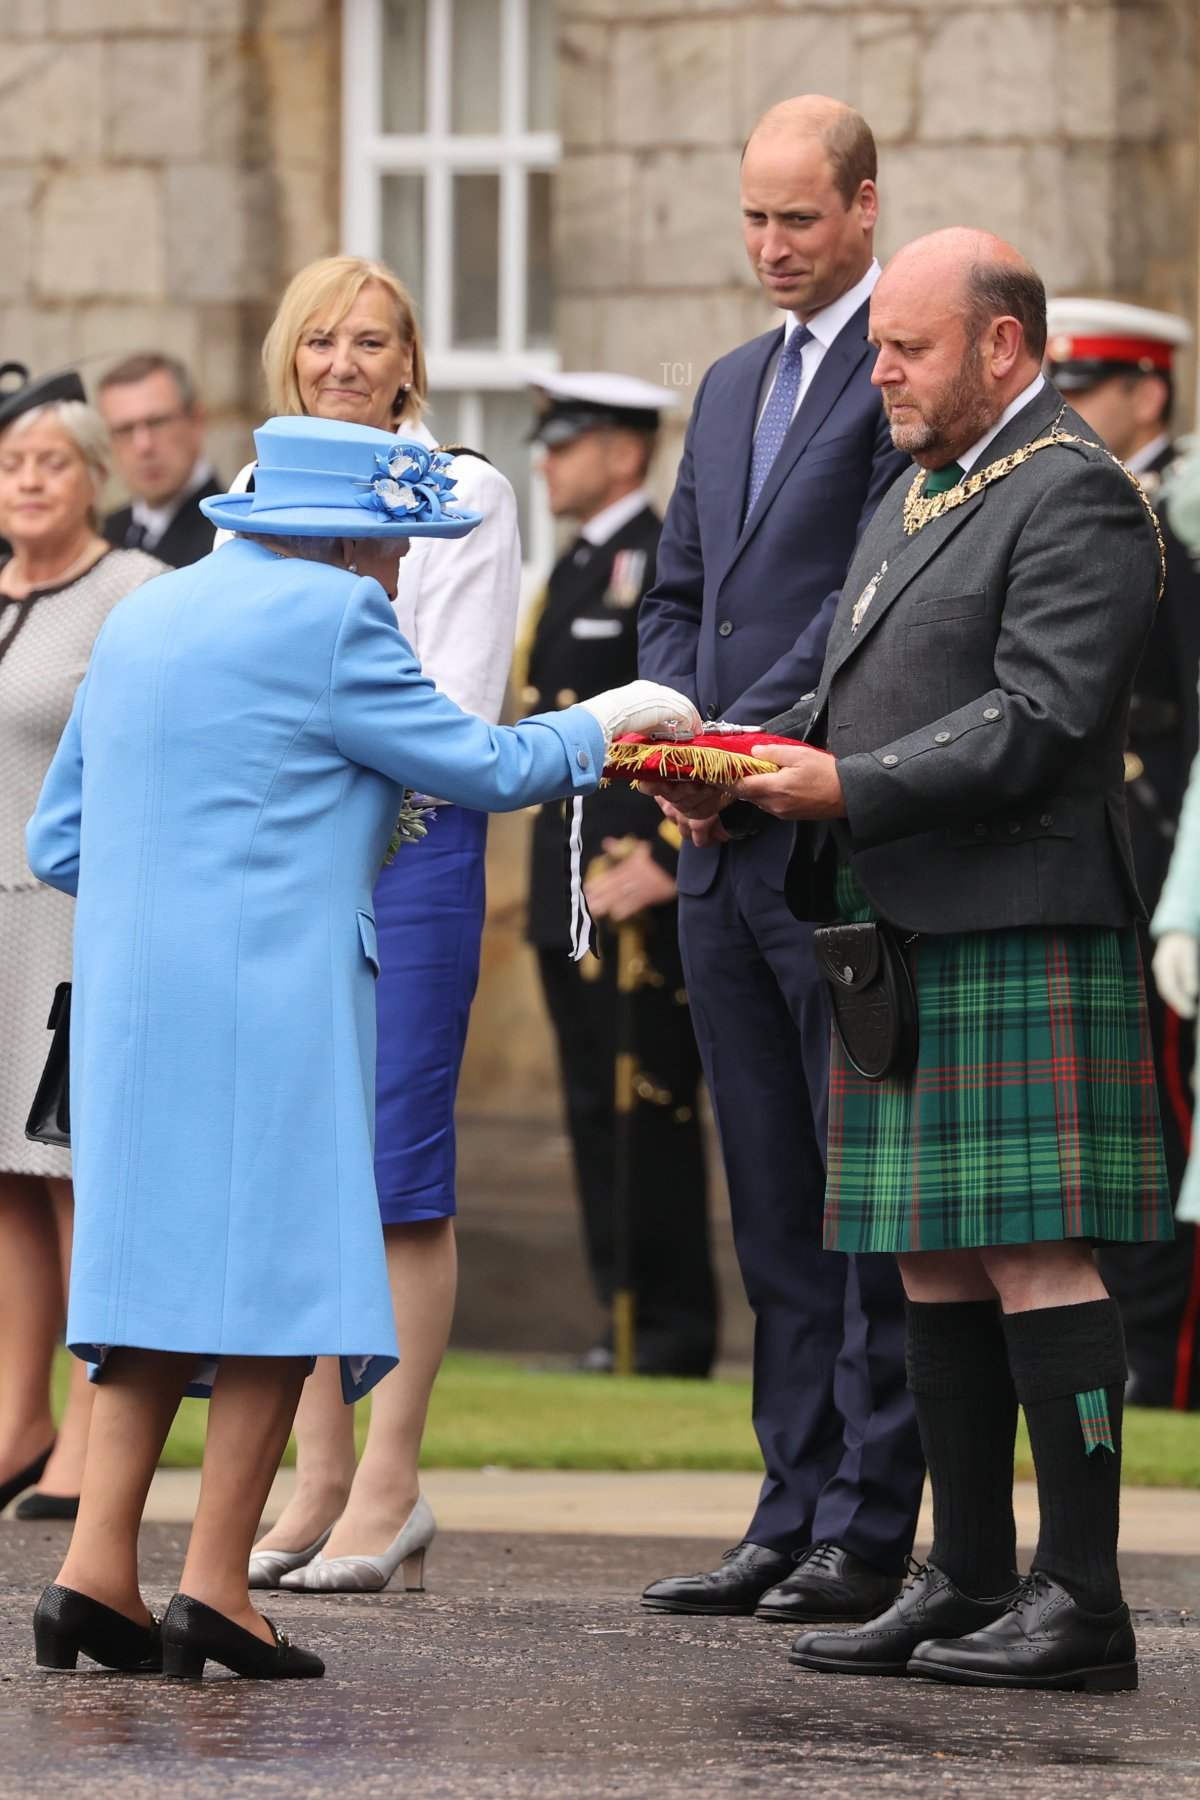 Queen Elizabeth II attends The Palace Of Holyrood house on June 28, 2021 in Edinburgh, Scotland